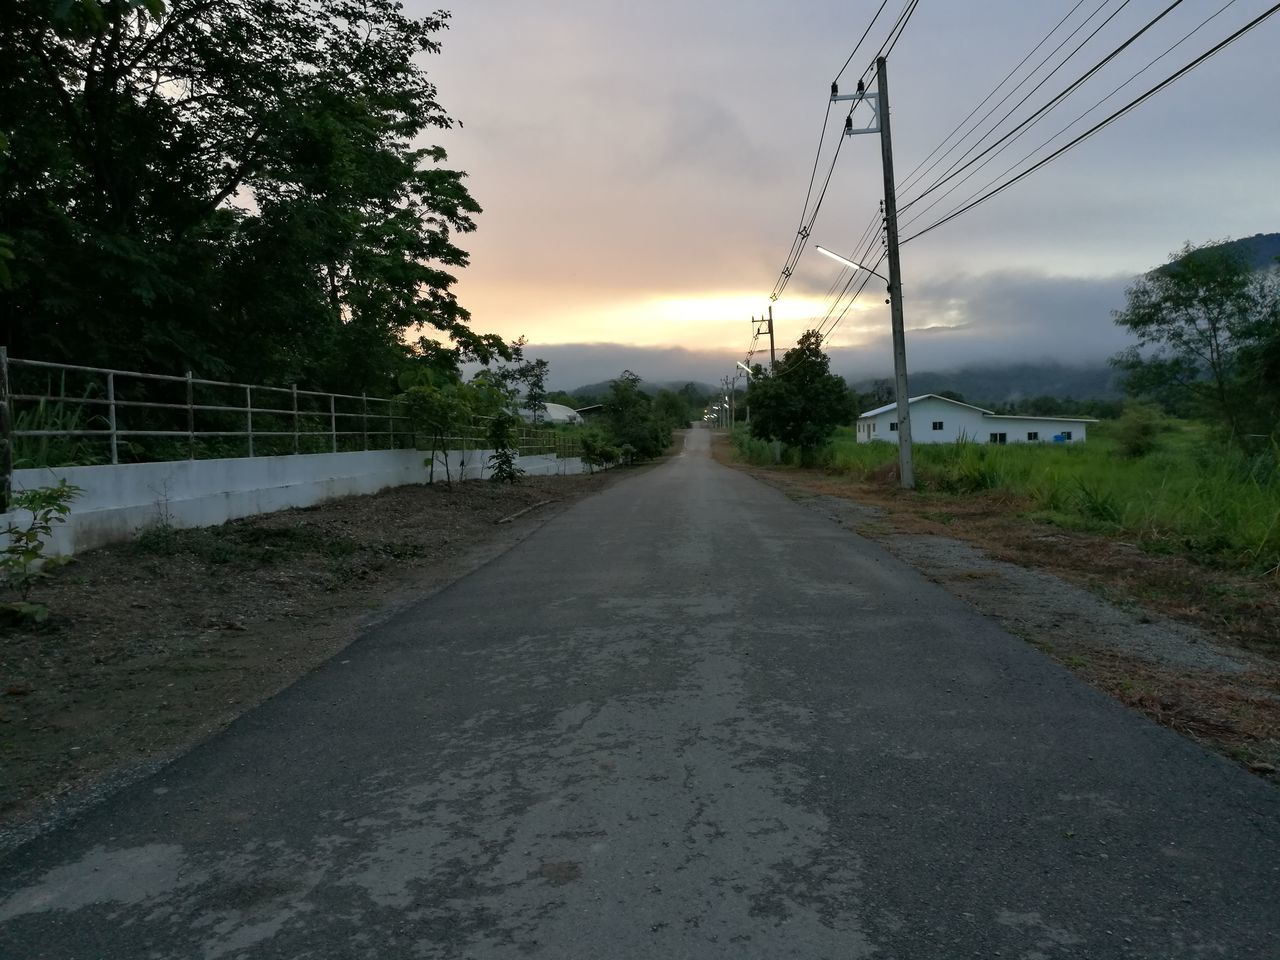 diminishing perspective, the way forward, sky, road, tree, cable, transportation, no people, electricity pylon, cloud - sky, outdoors, sunset, nature, day, telephone line